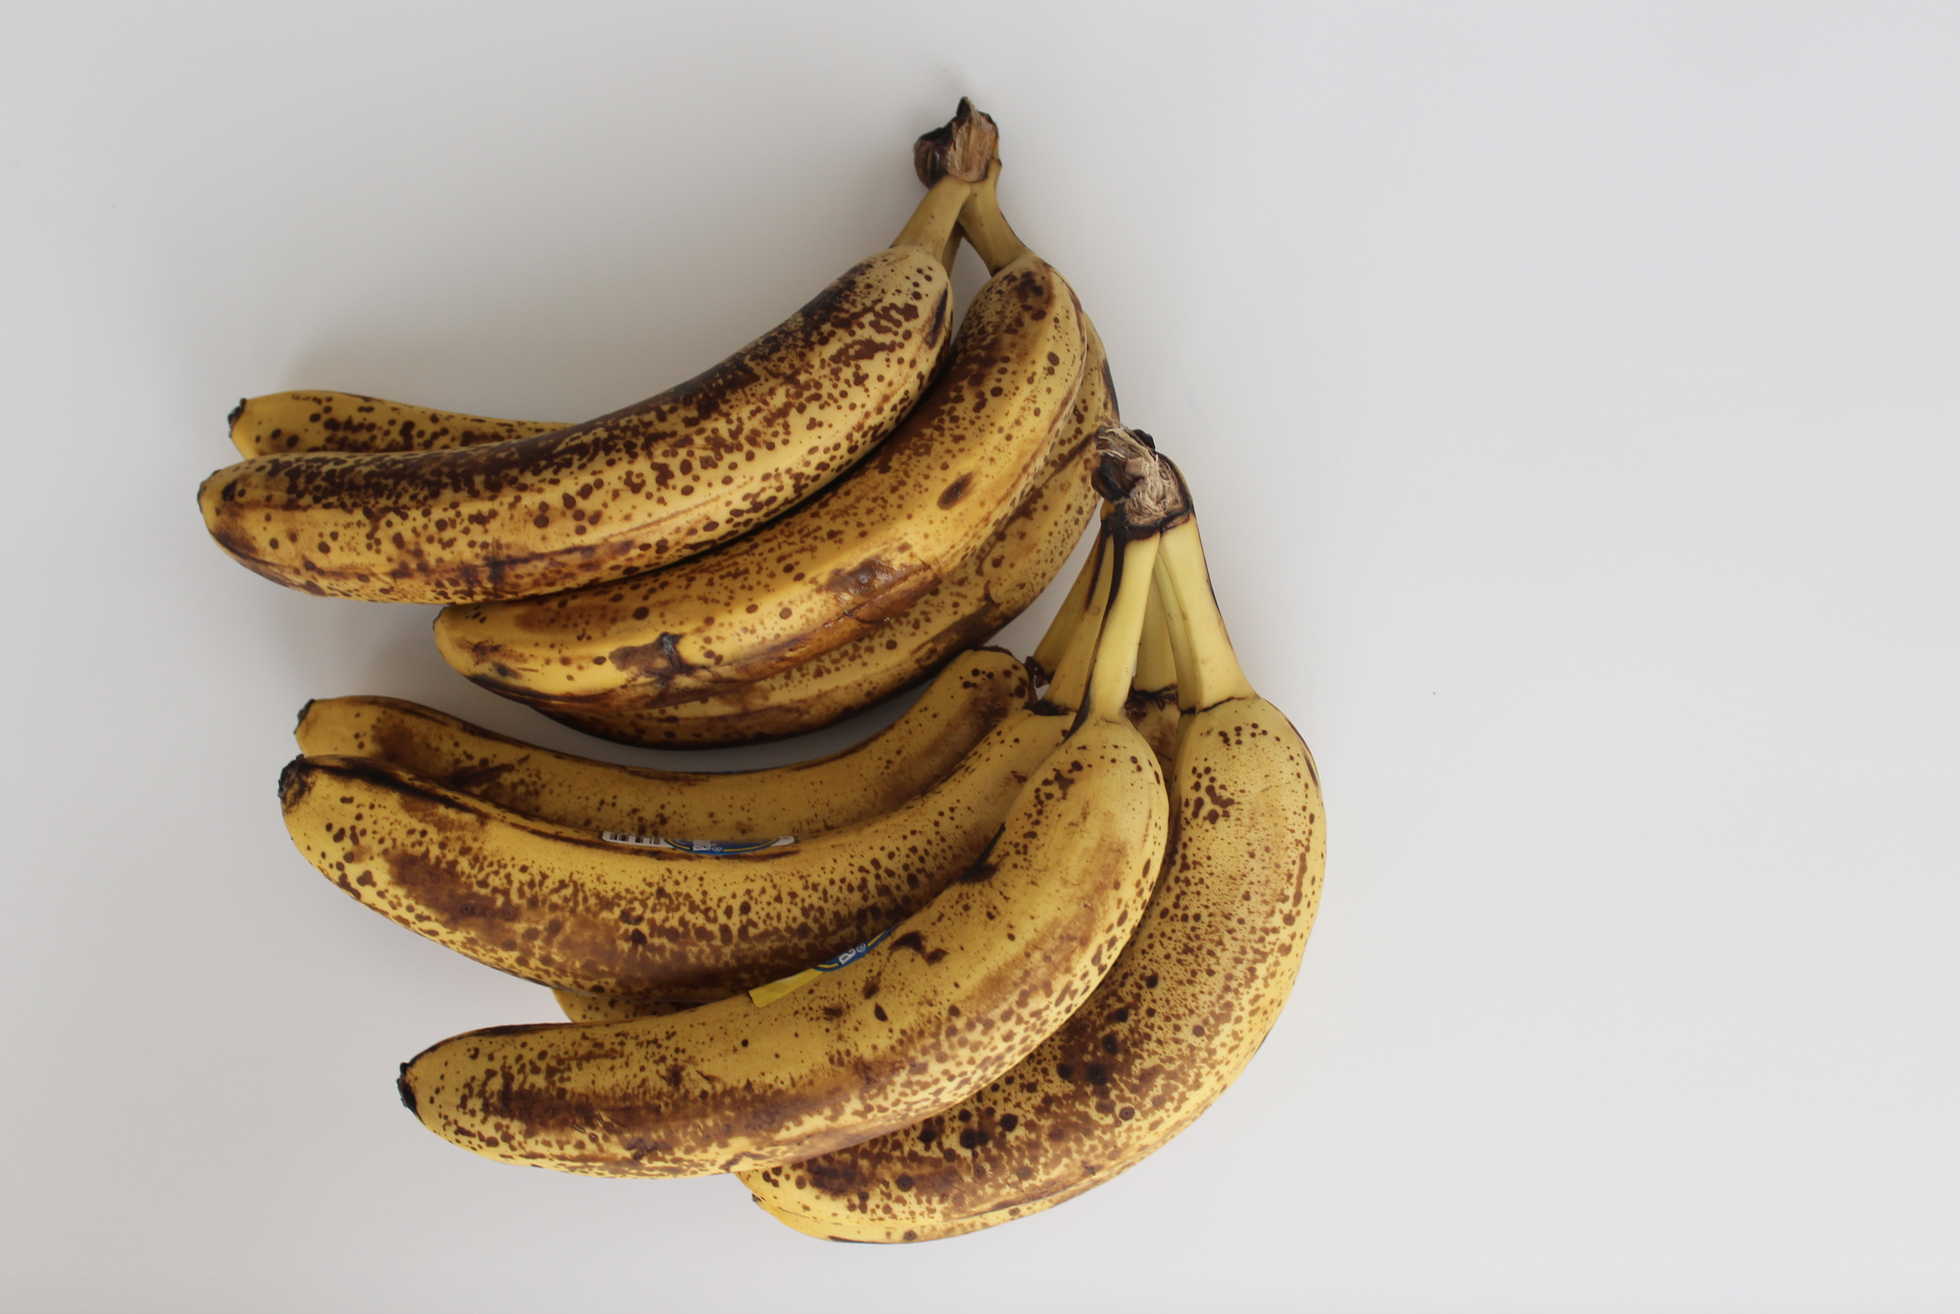 55 Ways to Use Ripe Bananas